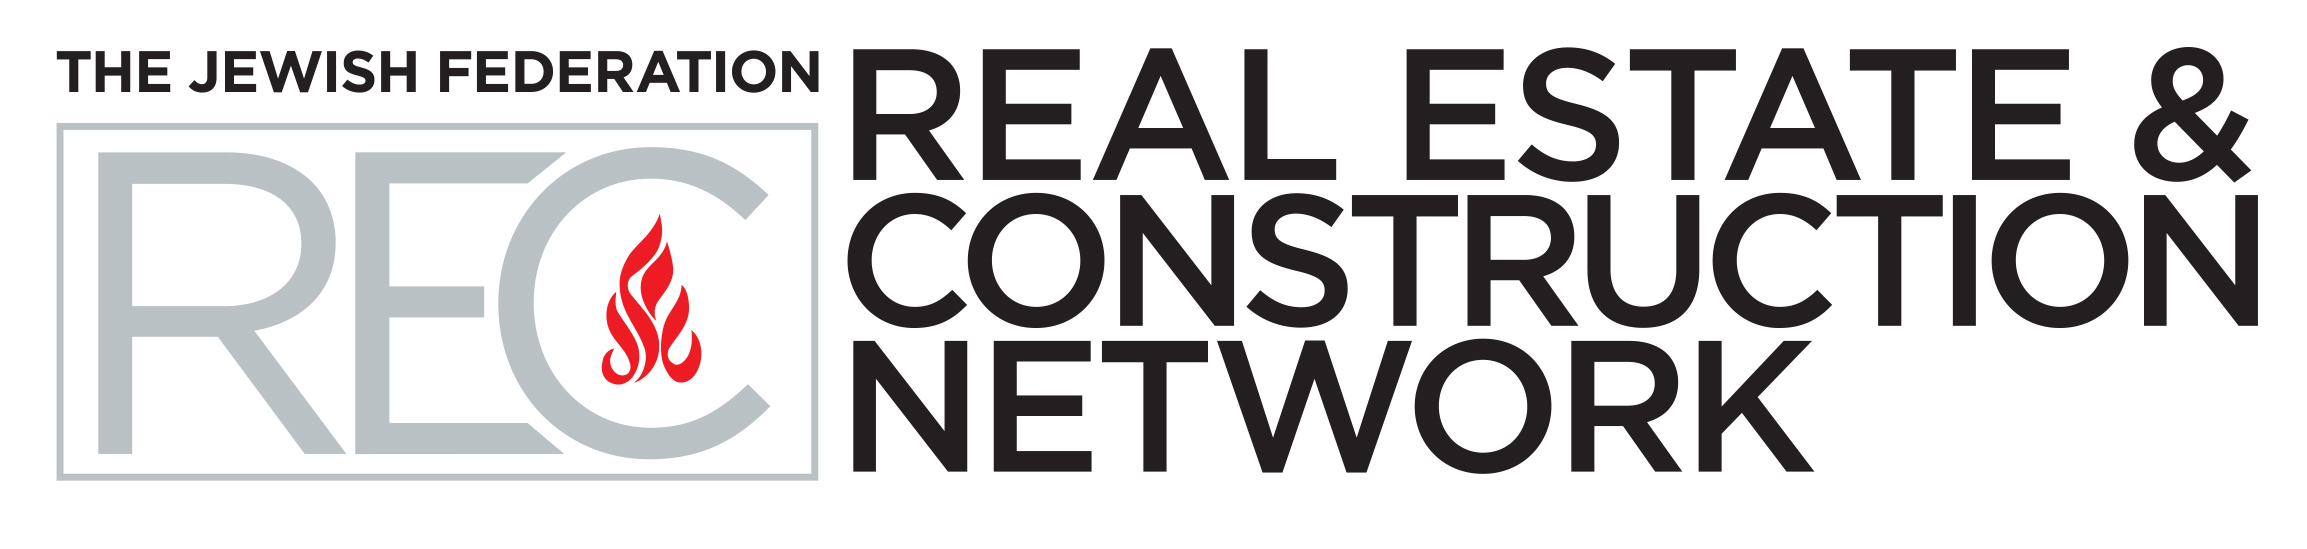 The Jewish Federation Real Estate & Construction Network